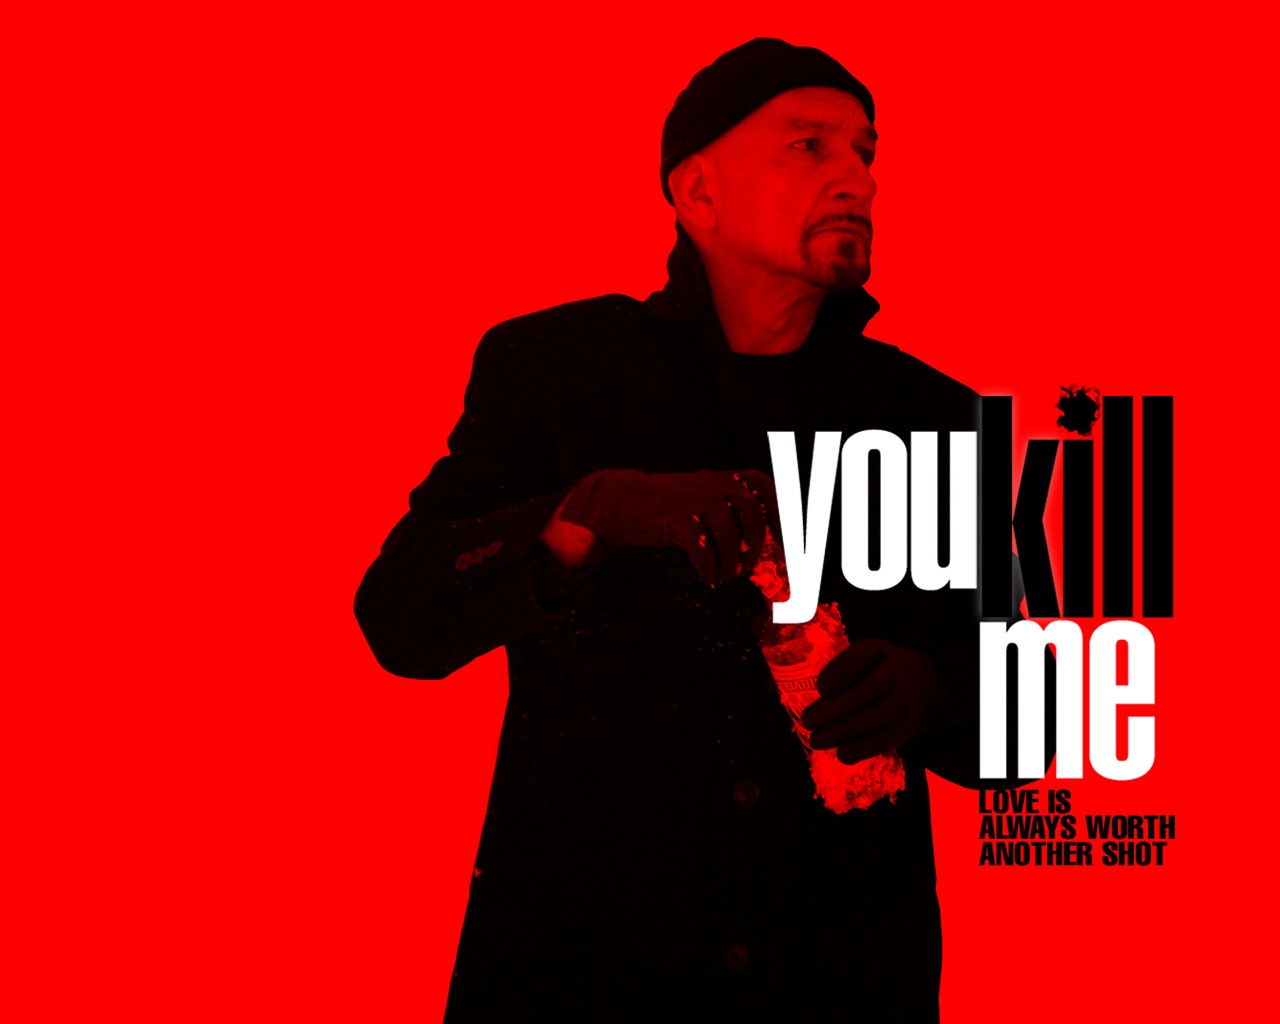 1280x1024 You Kill Me Desktop Pc And Mac Wallpaper